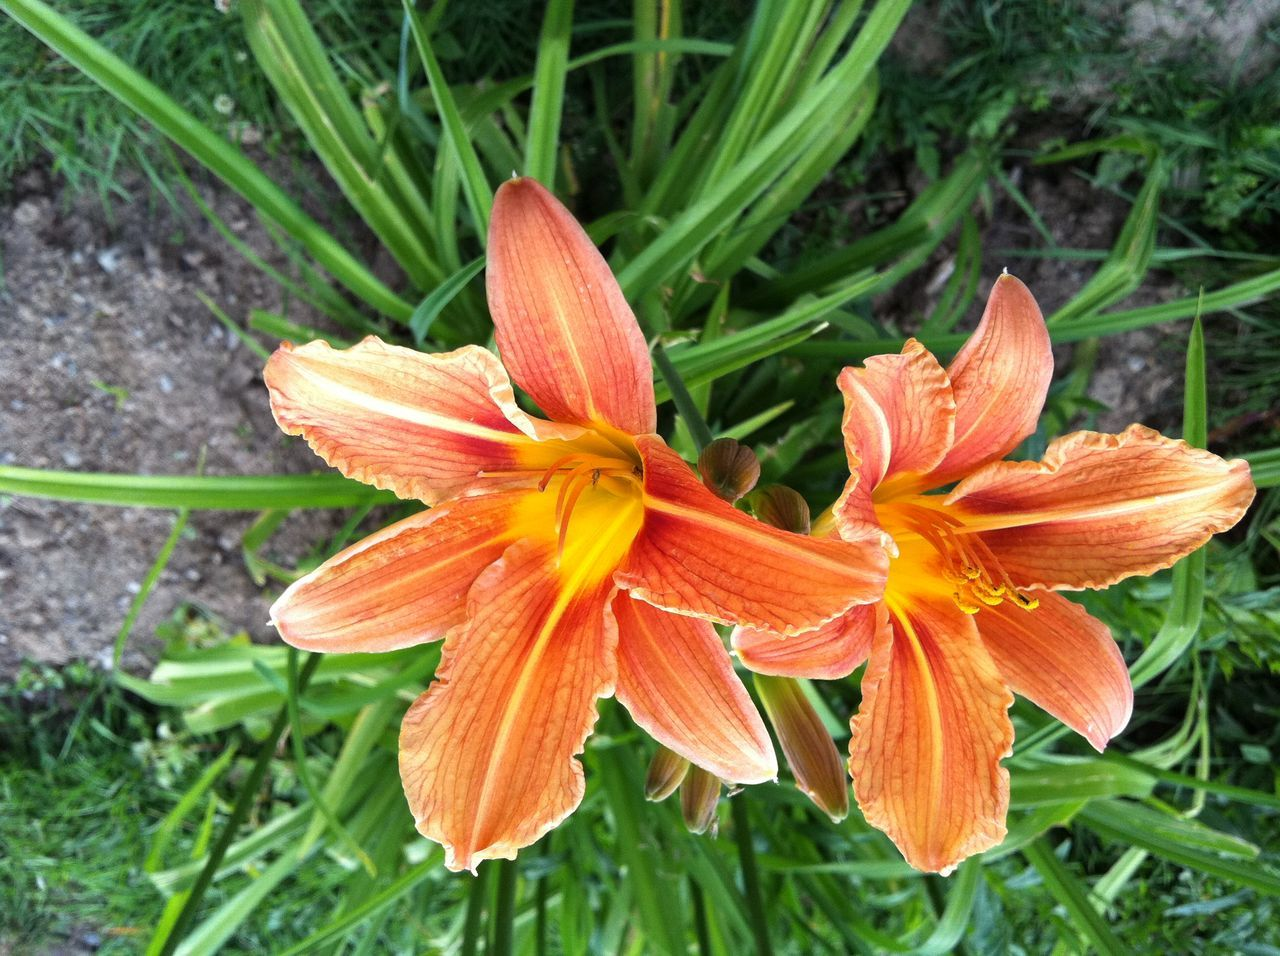 flower, growth, petal, fragility, nature, freshness, flower head, beauty in nature, orange color, plant, outdoors, blooming, close-up, day, day lily, no people